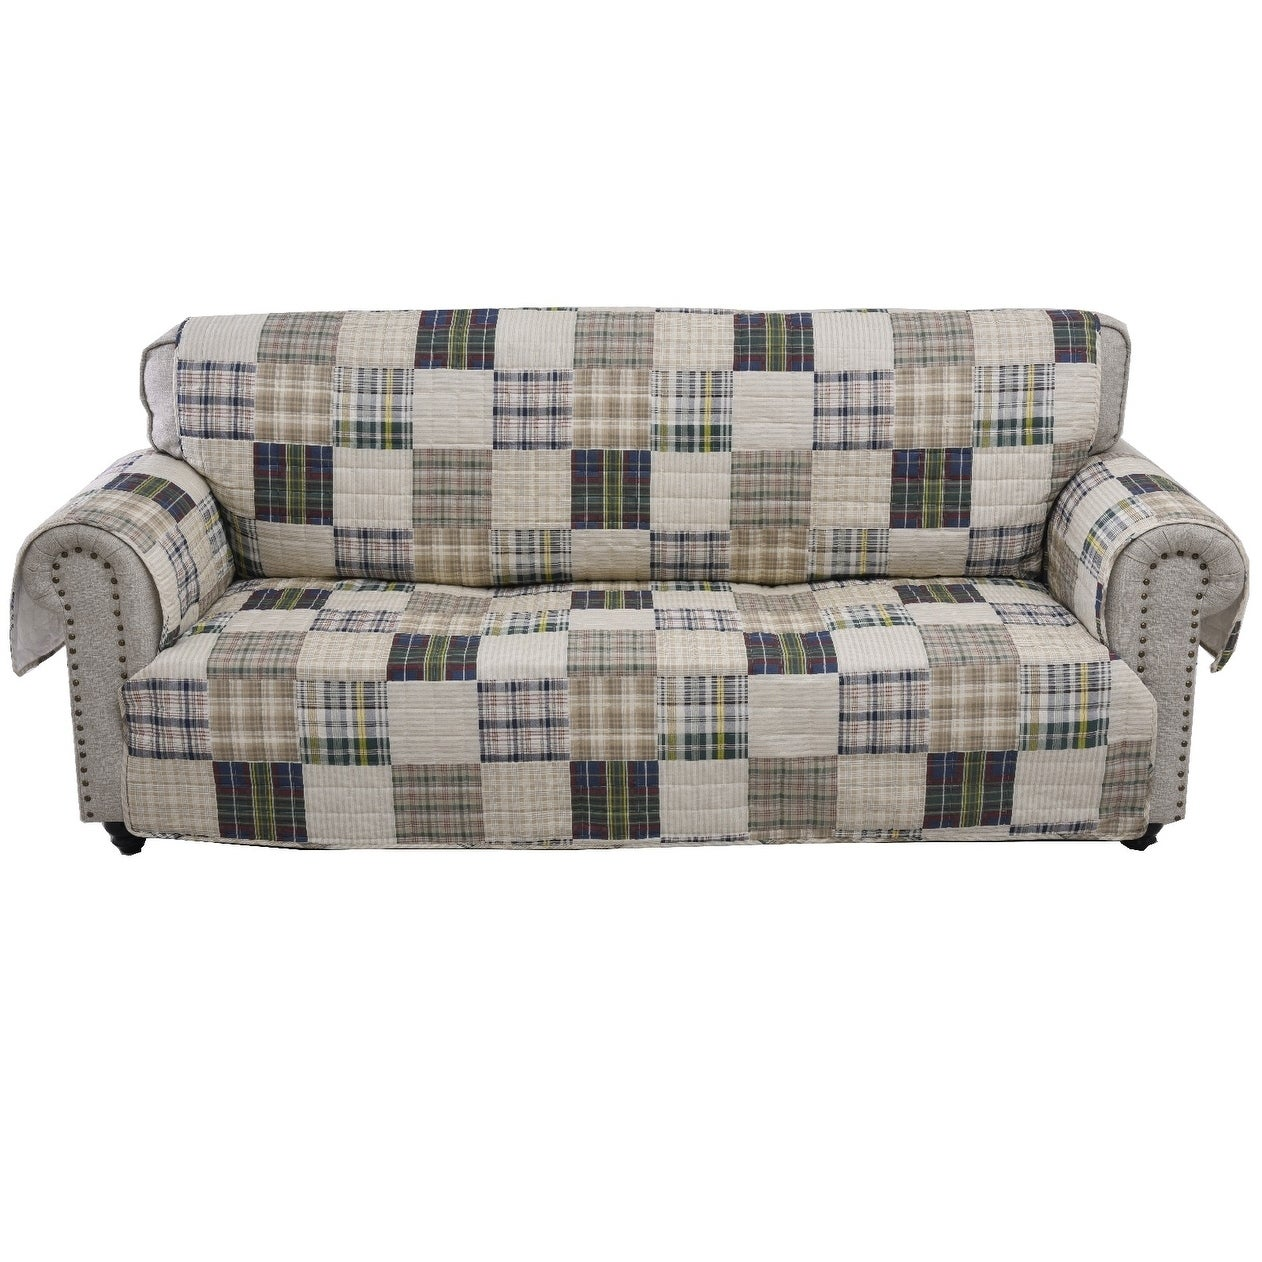 Peachy Plaid Slipcovers Furniture Covers Find Great Home Decor Andrewgaddart Wooden Chair Designs For Living Room Andrewgaddartcom